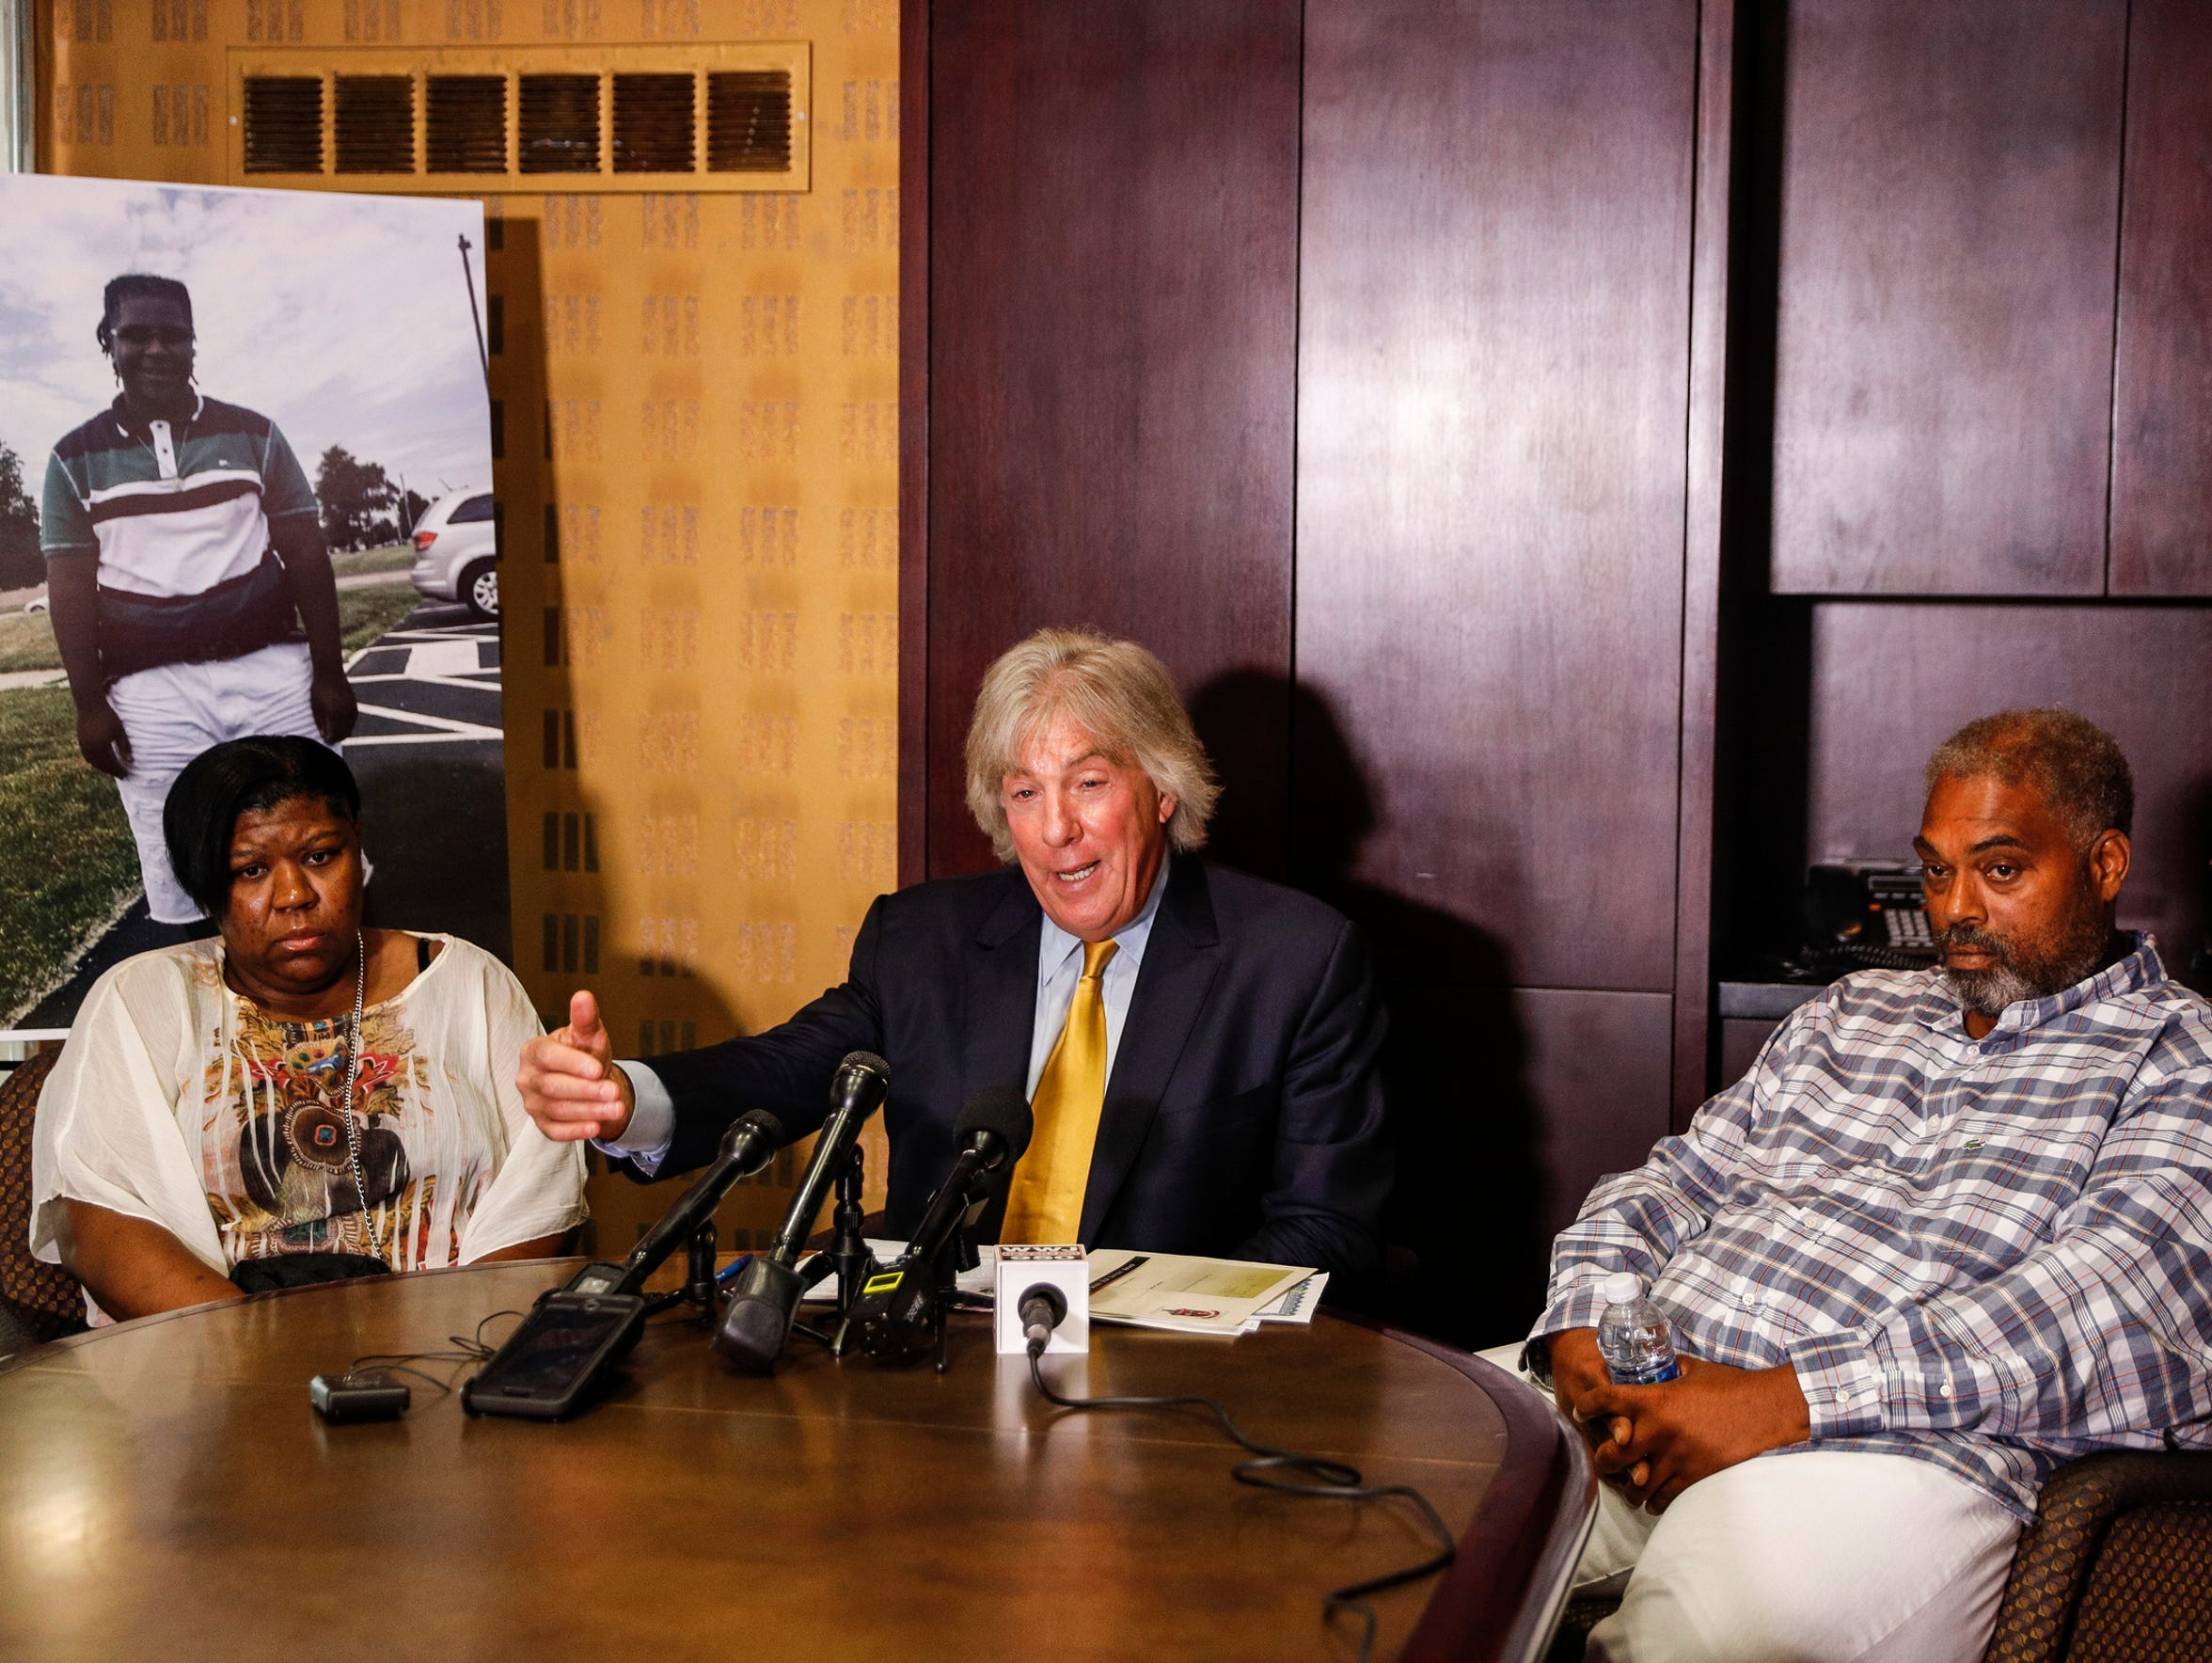 Monique Grimes, left, and John Grimes, right, with attorney Geoffrey Fieger, hold a news conference in August 2017 about the lawsuit over the death of 15-year-old Damon Grimes. Monique and John are Damon's parents.